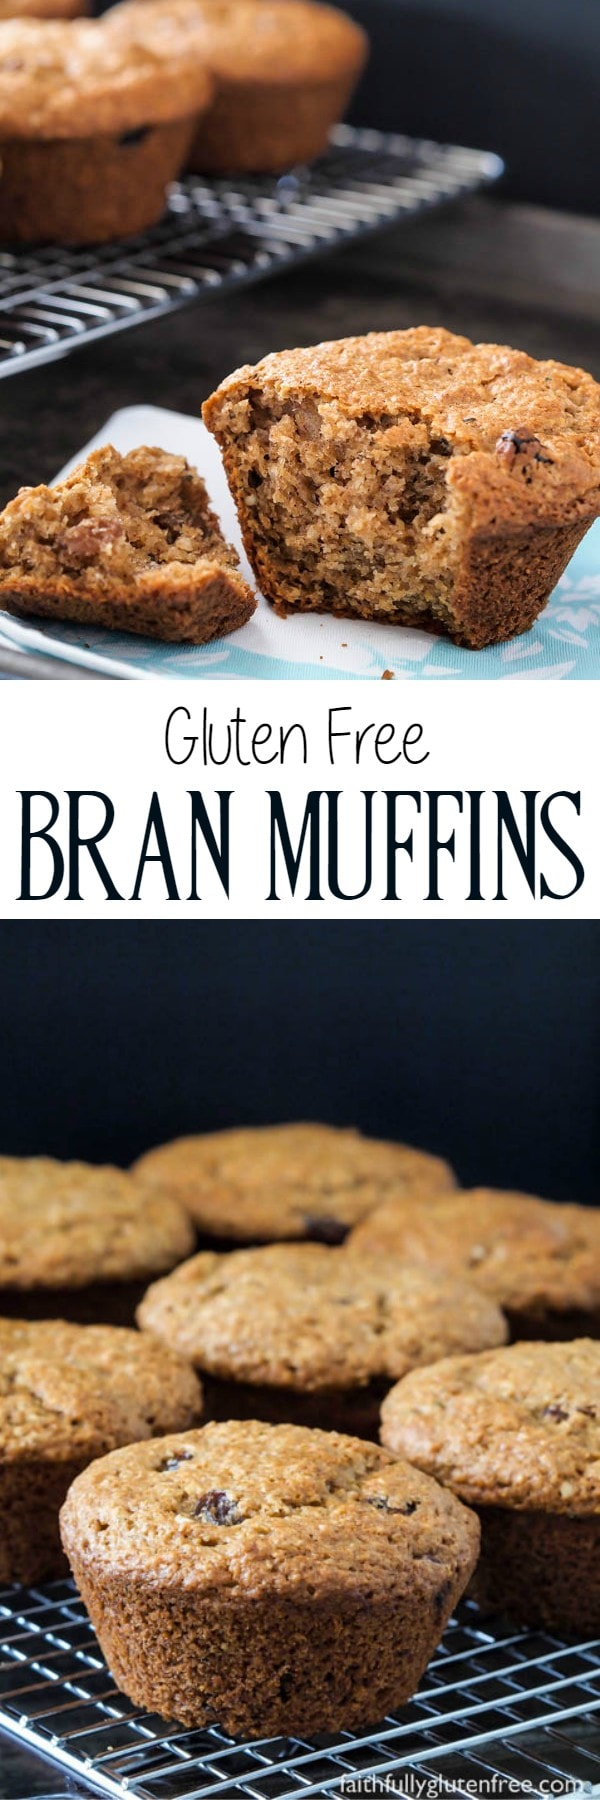 These Gluten Free Raisin Bran Muffins are legit - just like you would have eaten before eating gluten free.